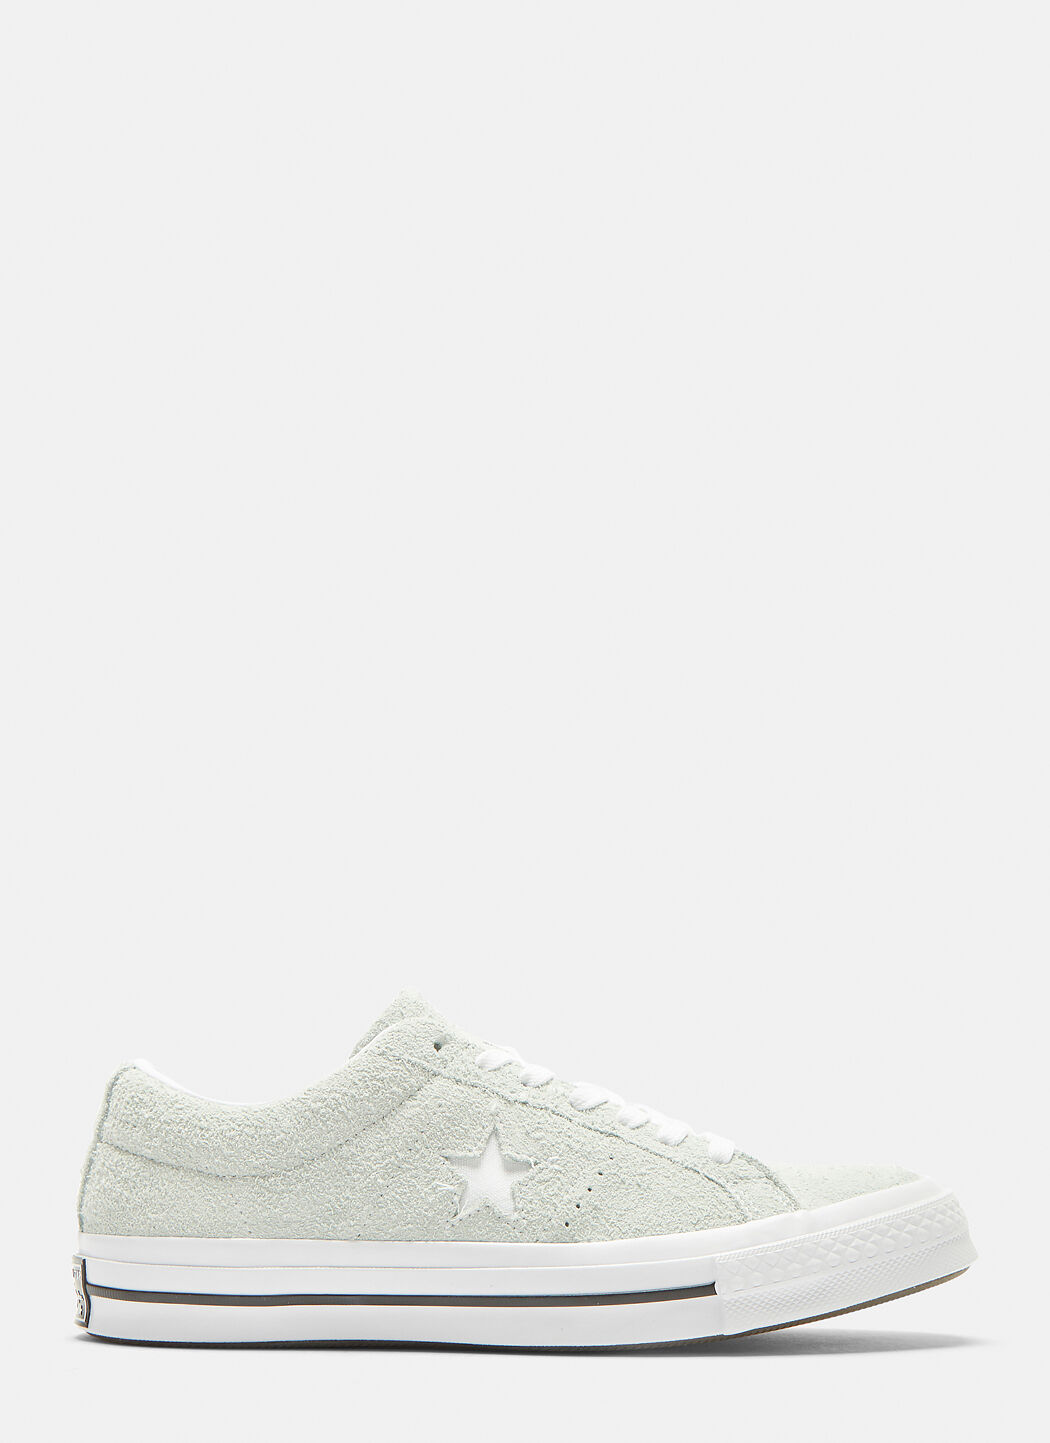 Converse One Star Suede Sneakers in White | LN CC